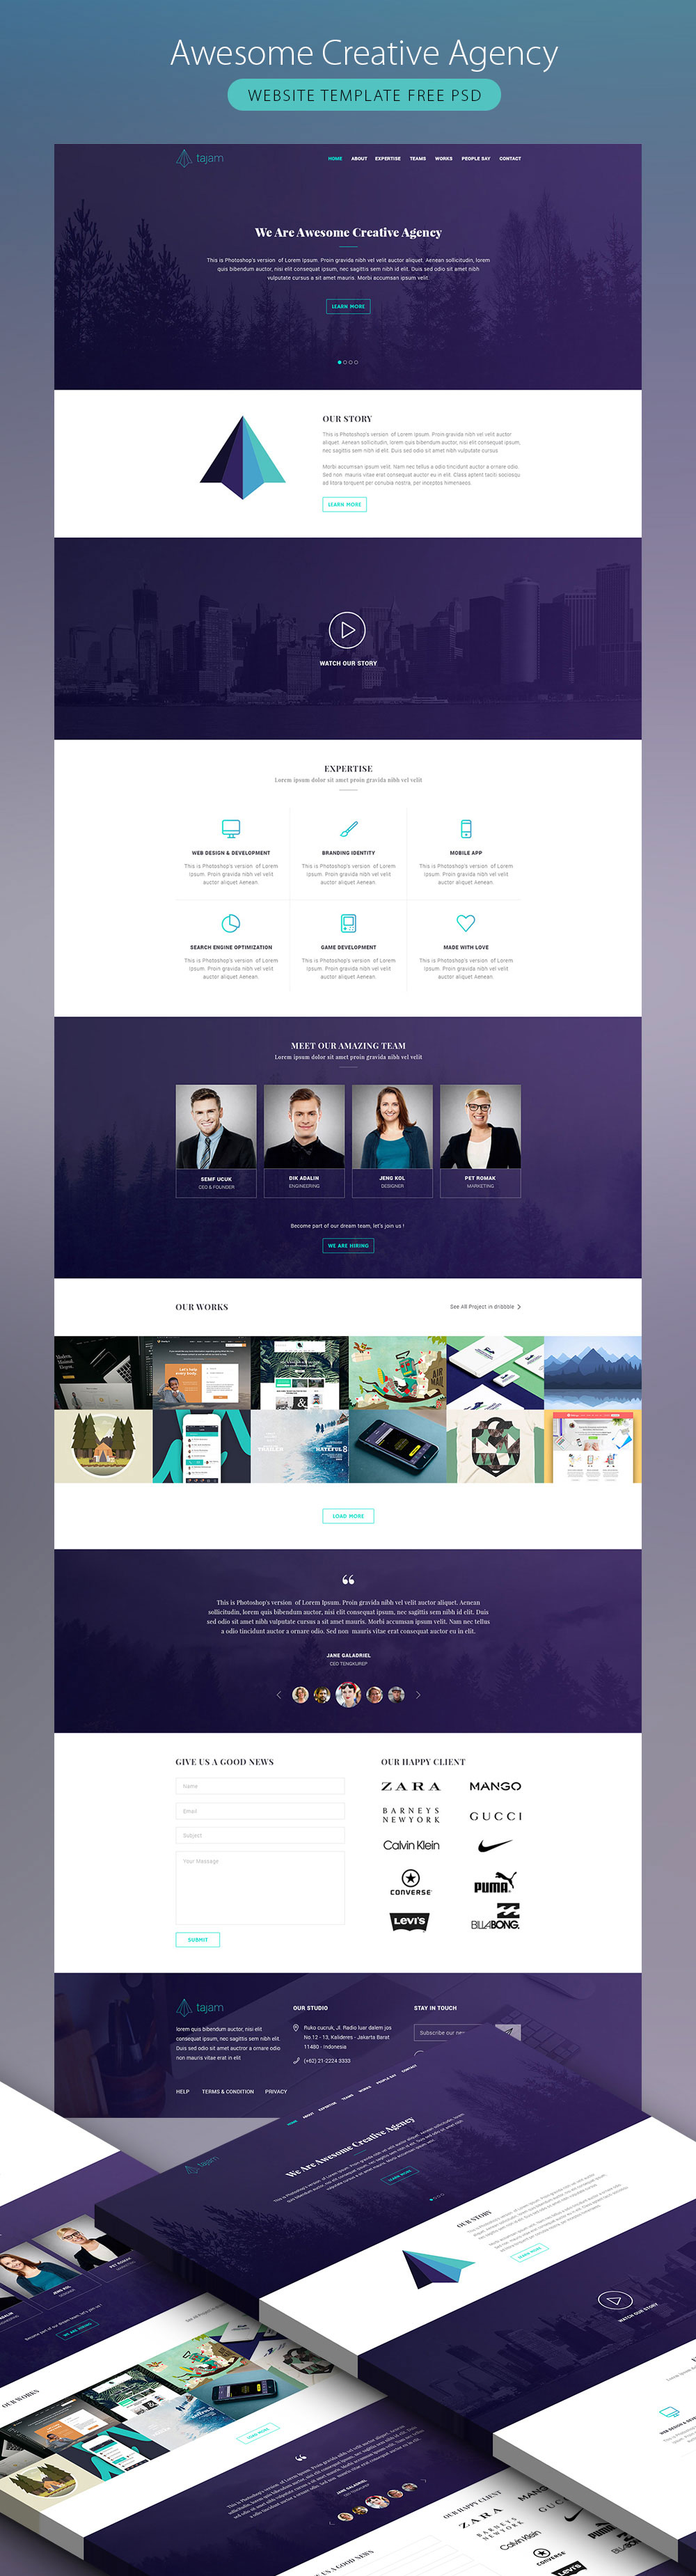 High quality 50 free corporate and business web templates psd awesome creative agency website template free psd flashek Image collections